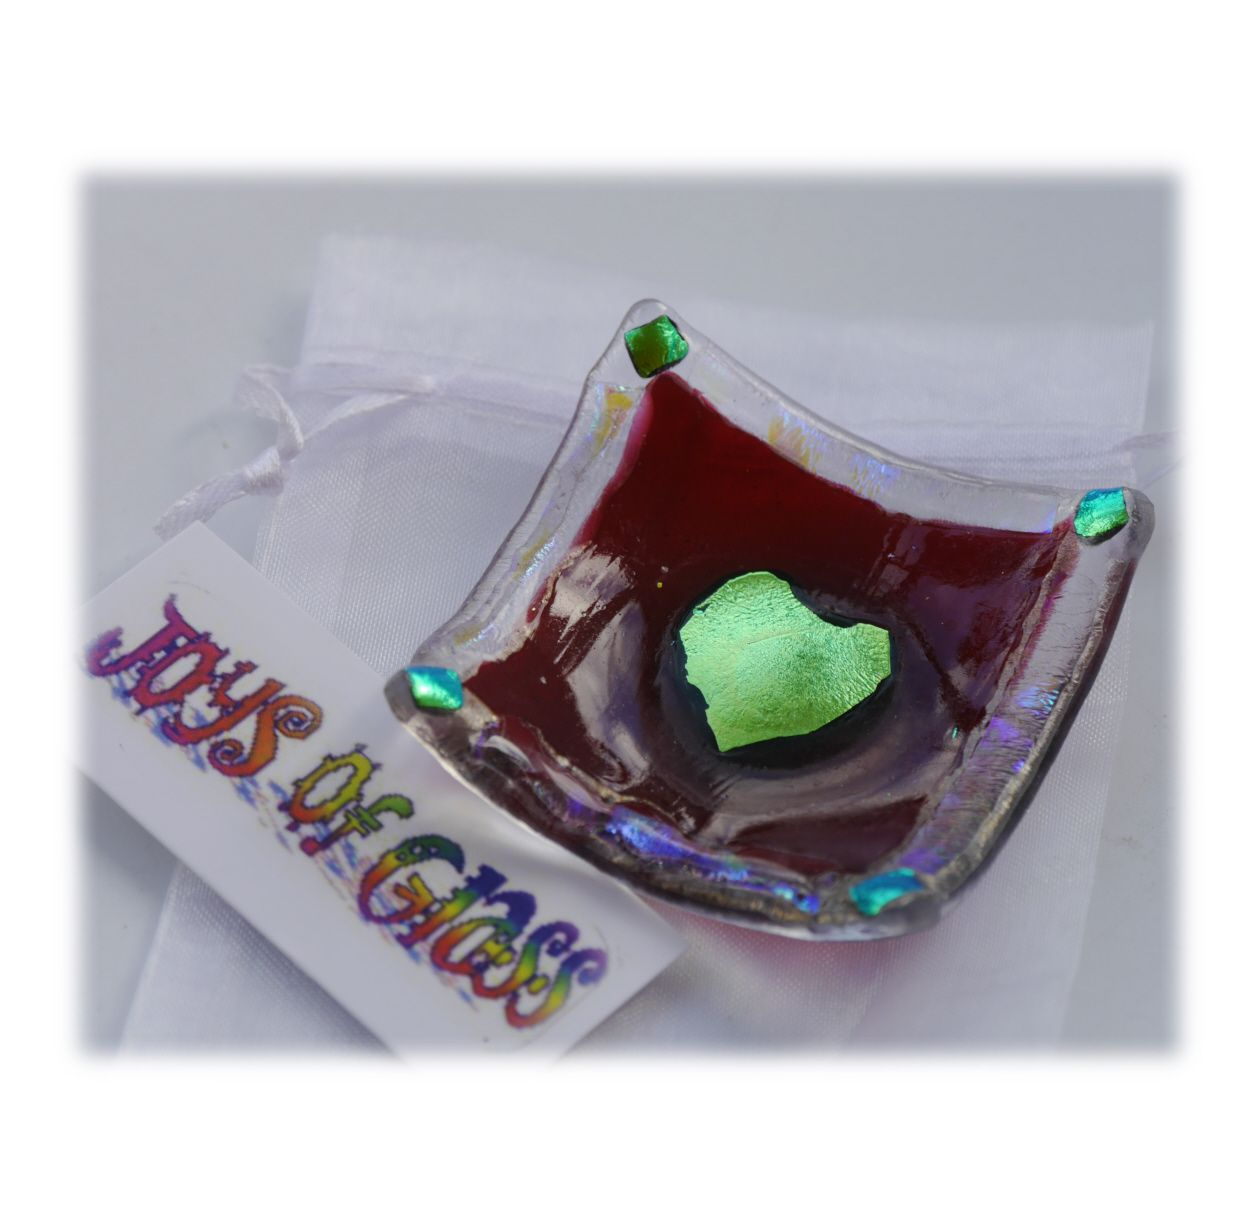 6cm Deep Dish 003 Cranberry Dichroic Heart #1811 FREE 7.50 - Copy